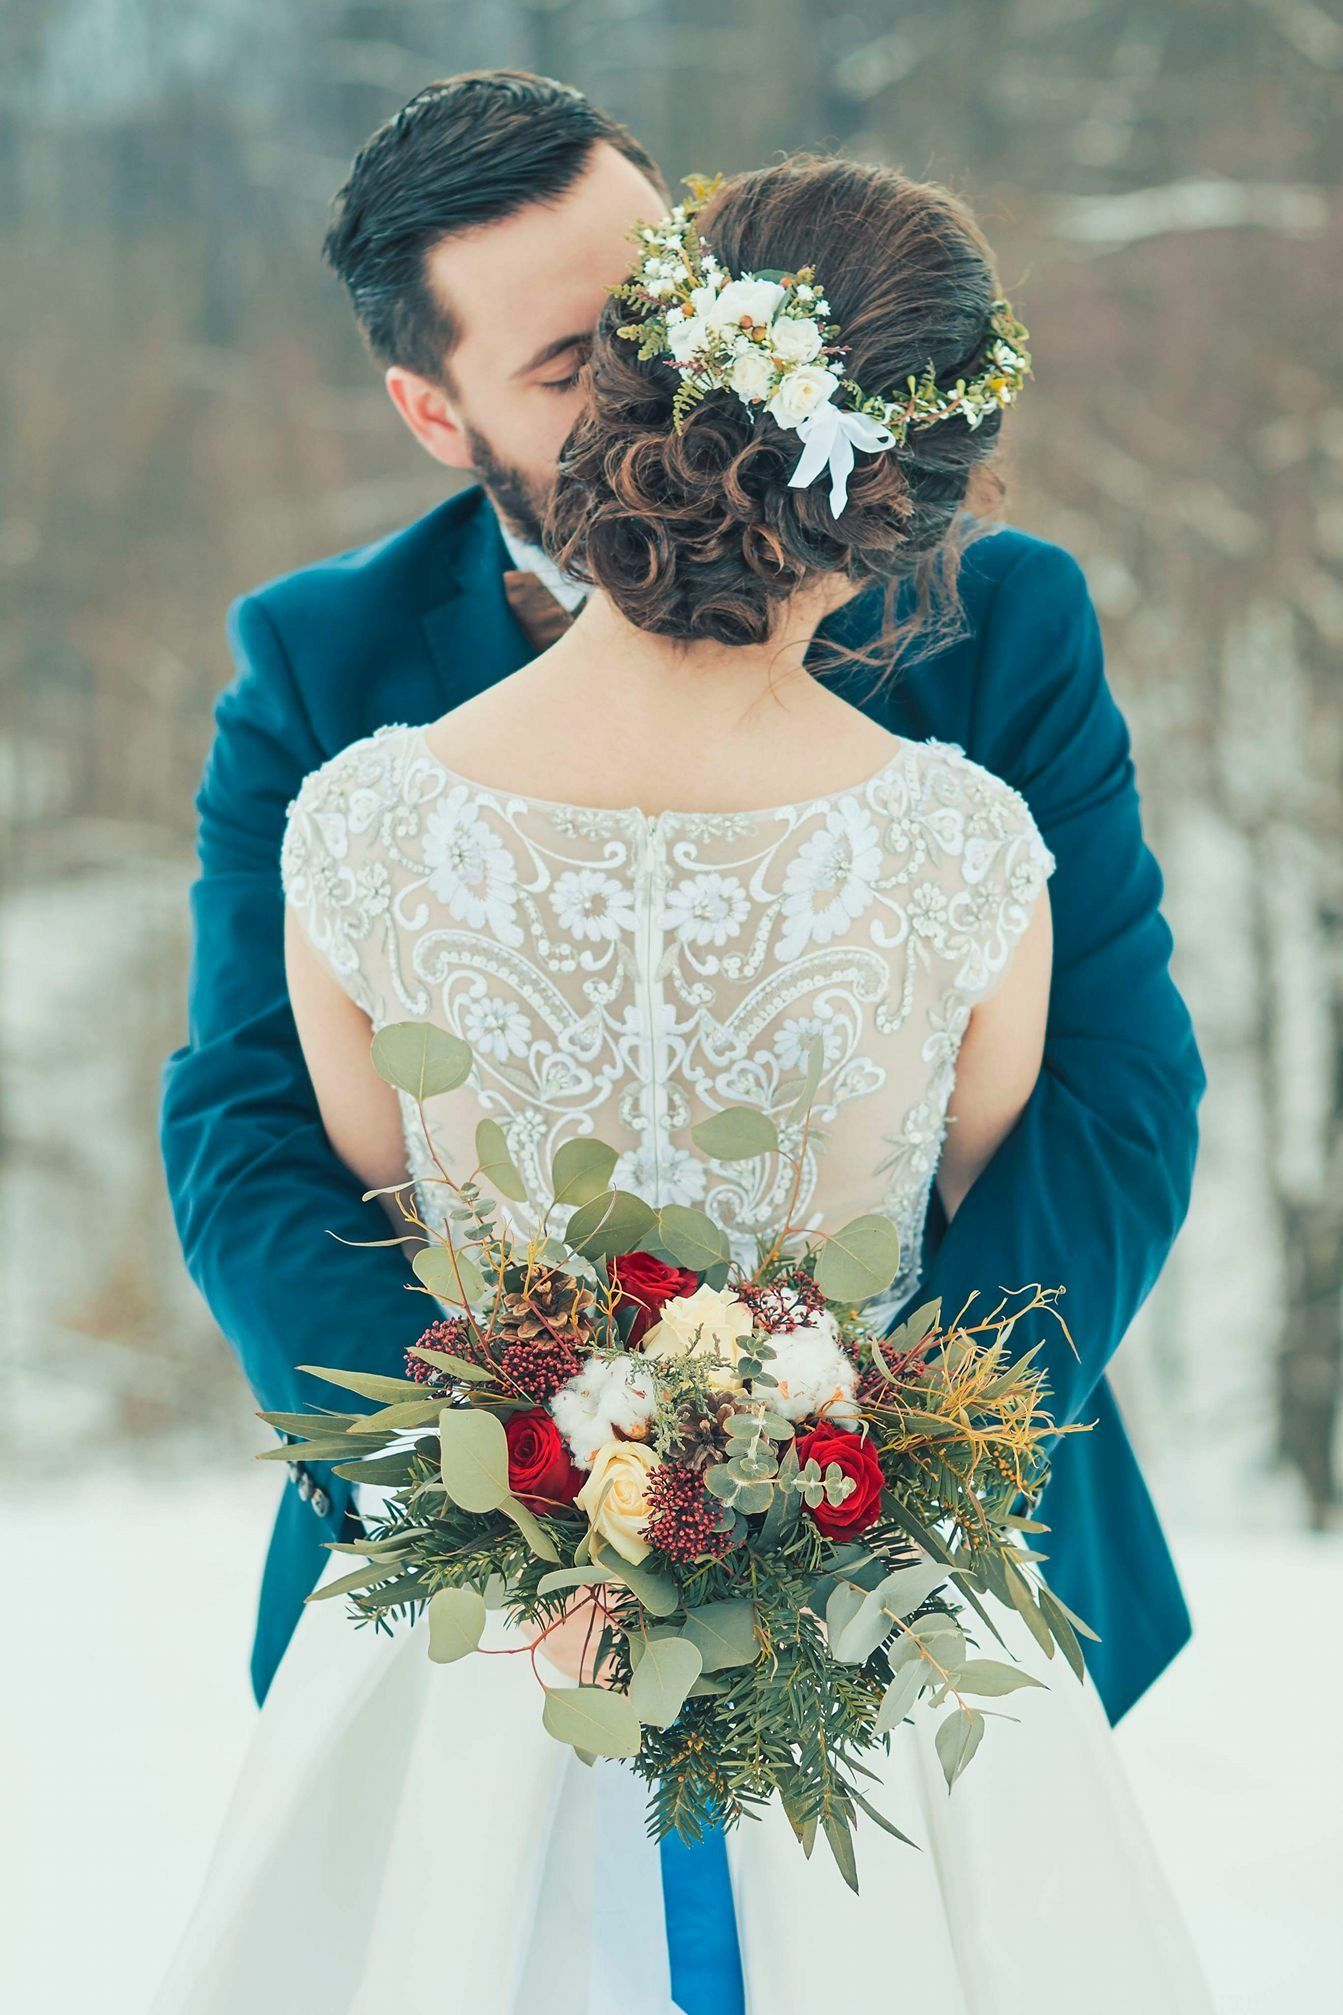 Our winter wedding in february colors navy blue burgundy and gold